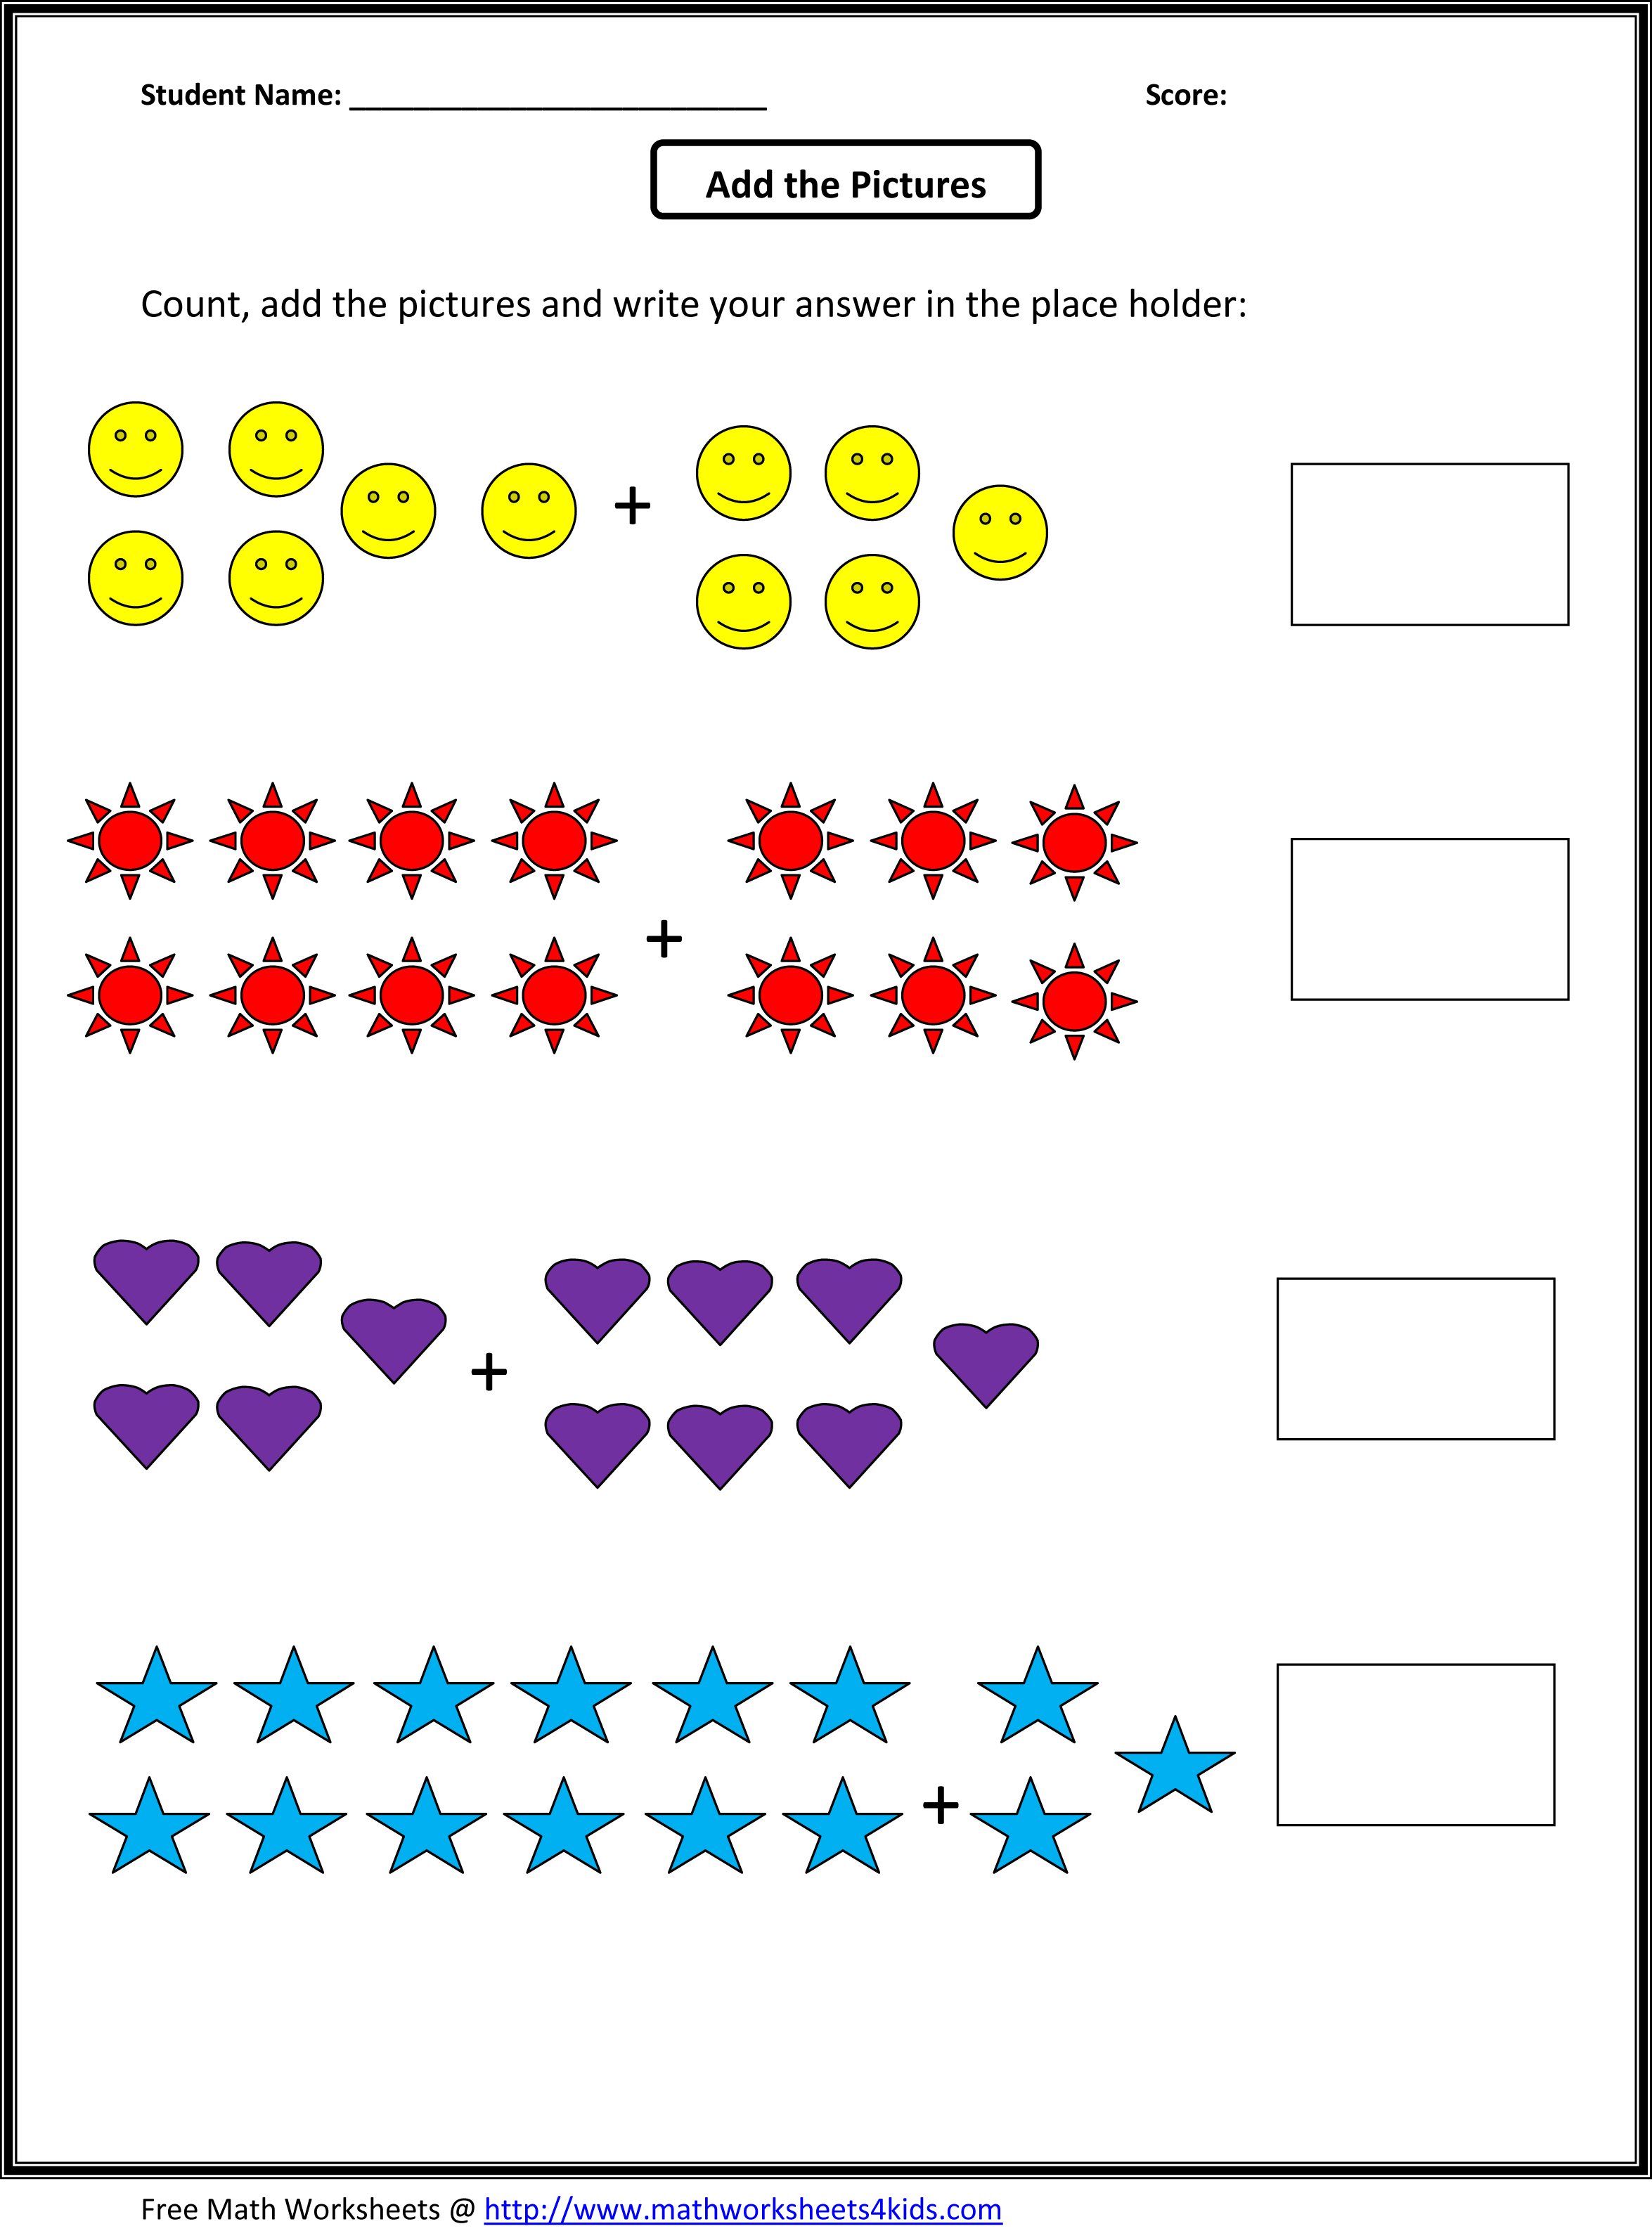 Proatmealus  Stunning Grade  Maths Worksheet  Reocurent With Lovable Math Worksheets For St Grade Free  Reocurent With Amusing Range Median Mode Mean Worksheet Also Present Perfect Continuous Worksheet In Addition Input Output Machine Worksheet And French Colors Worksheet As Well As Number  Worksheets Additionally Math Patterns Worksheet From Reocurentcom With Proatmealus  Lovable Grade  Maths Worksheet  Reocurent With Amusing Math Worksheets For St Grade Free  Reocurent And Stunning Range Median Mode Mean Worksheet Also Present Perfect Continuous Worksheet In Addition Input Output Machine Worksheet From Reocurentcom